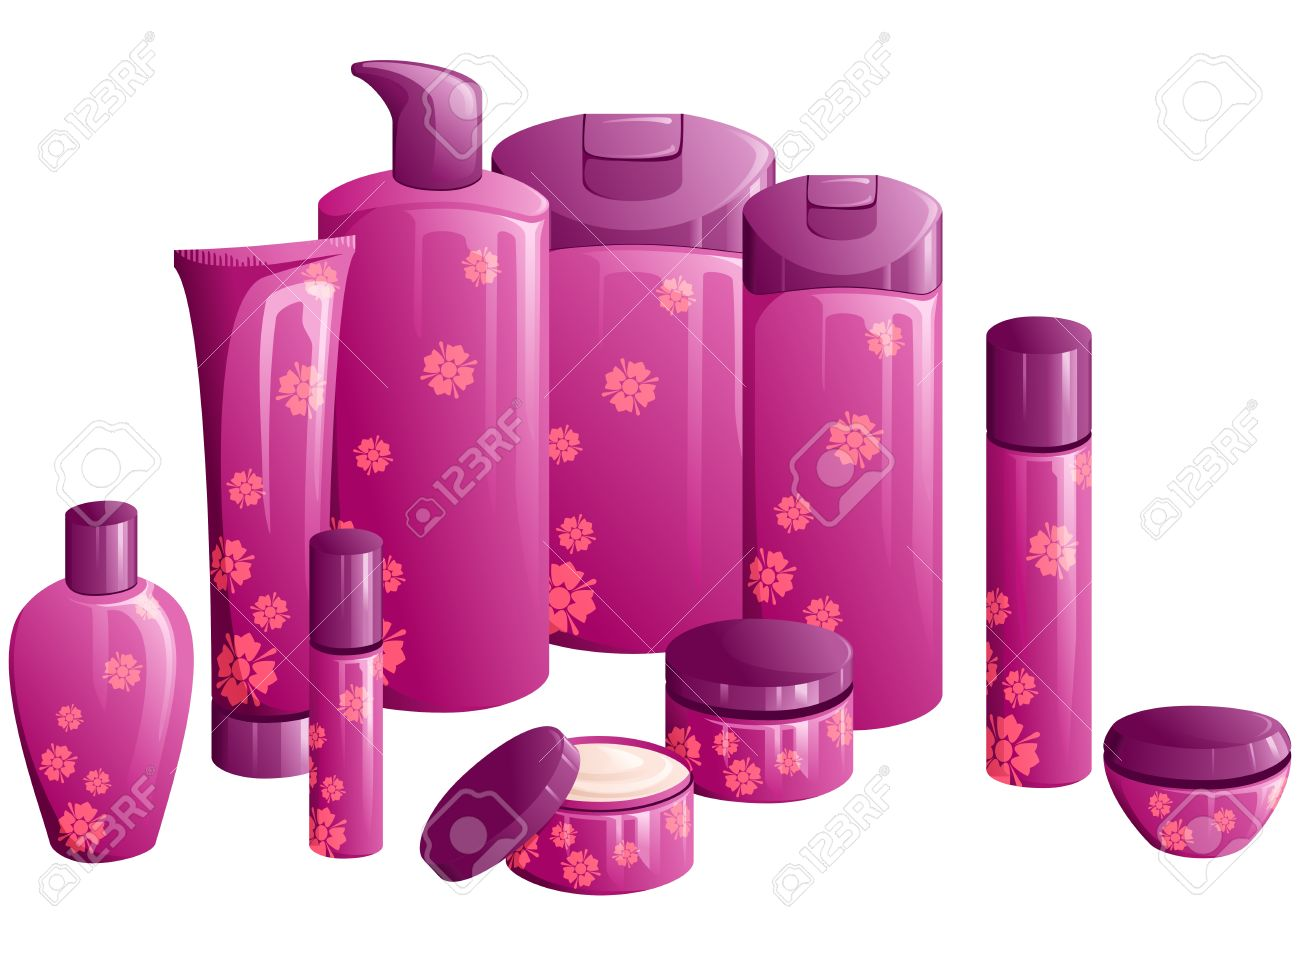 Line Design Clipart Free : Line of beauty products with a purple flower design graphics